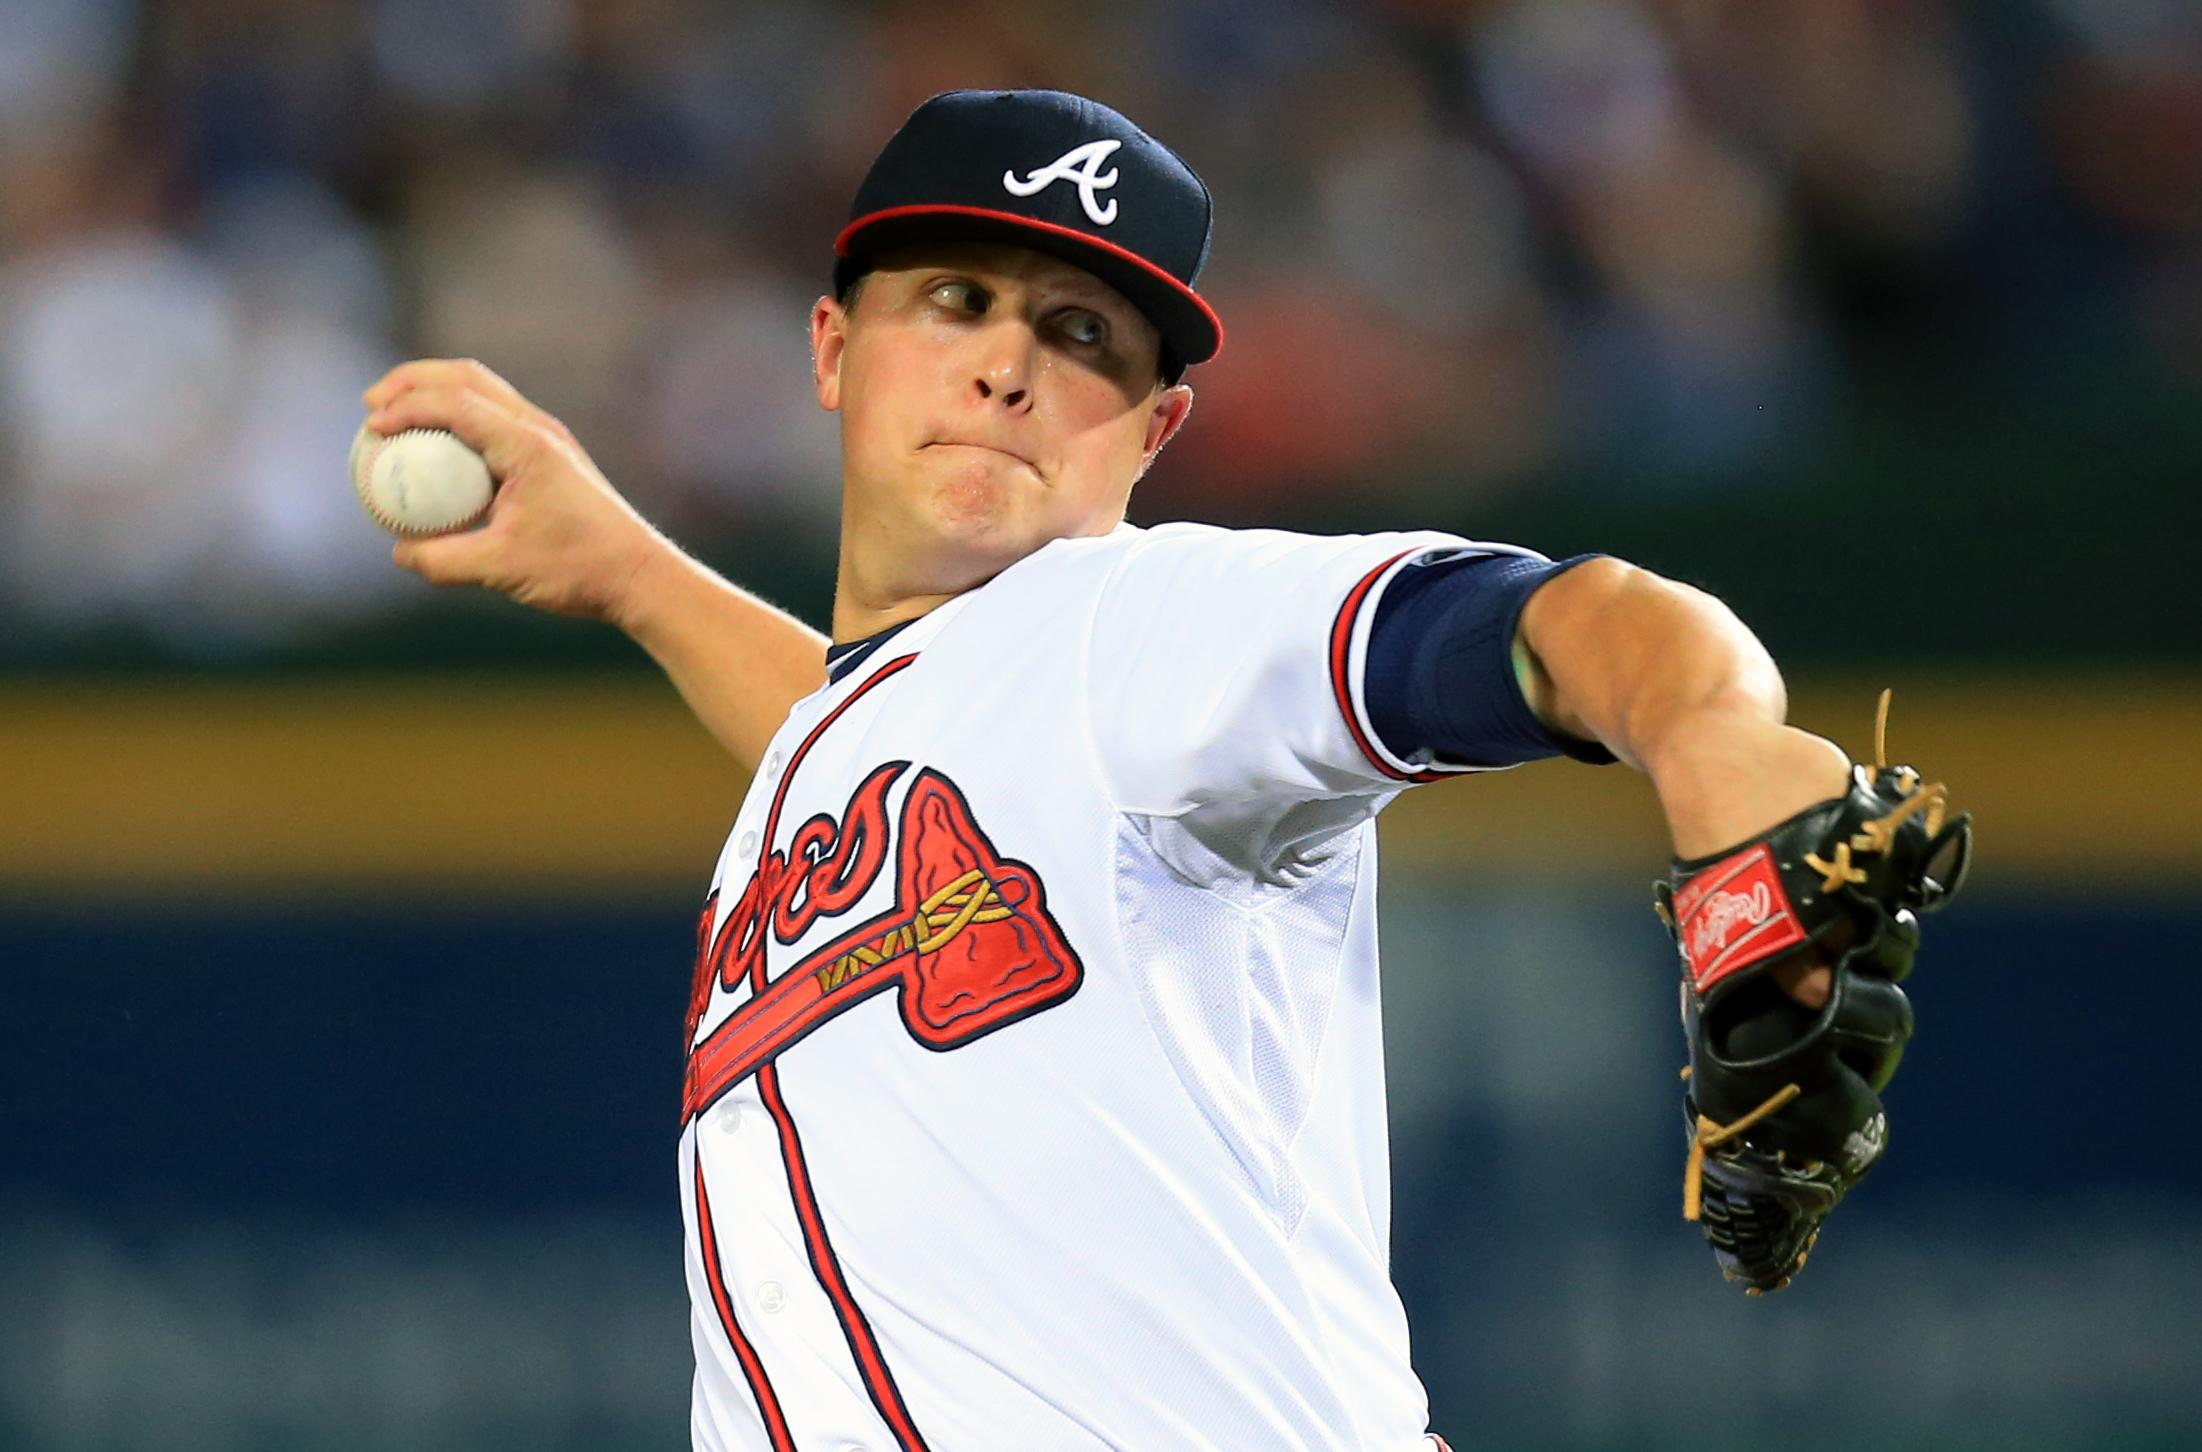 Kris Medlen gets two-year deal from Royals after Tommy John surgery